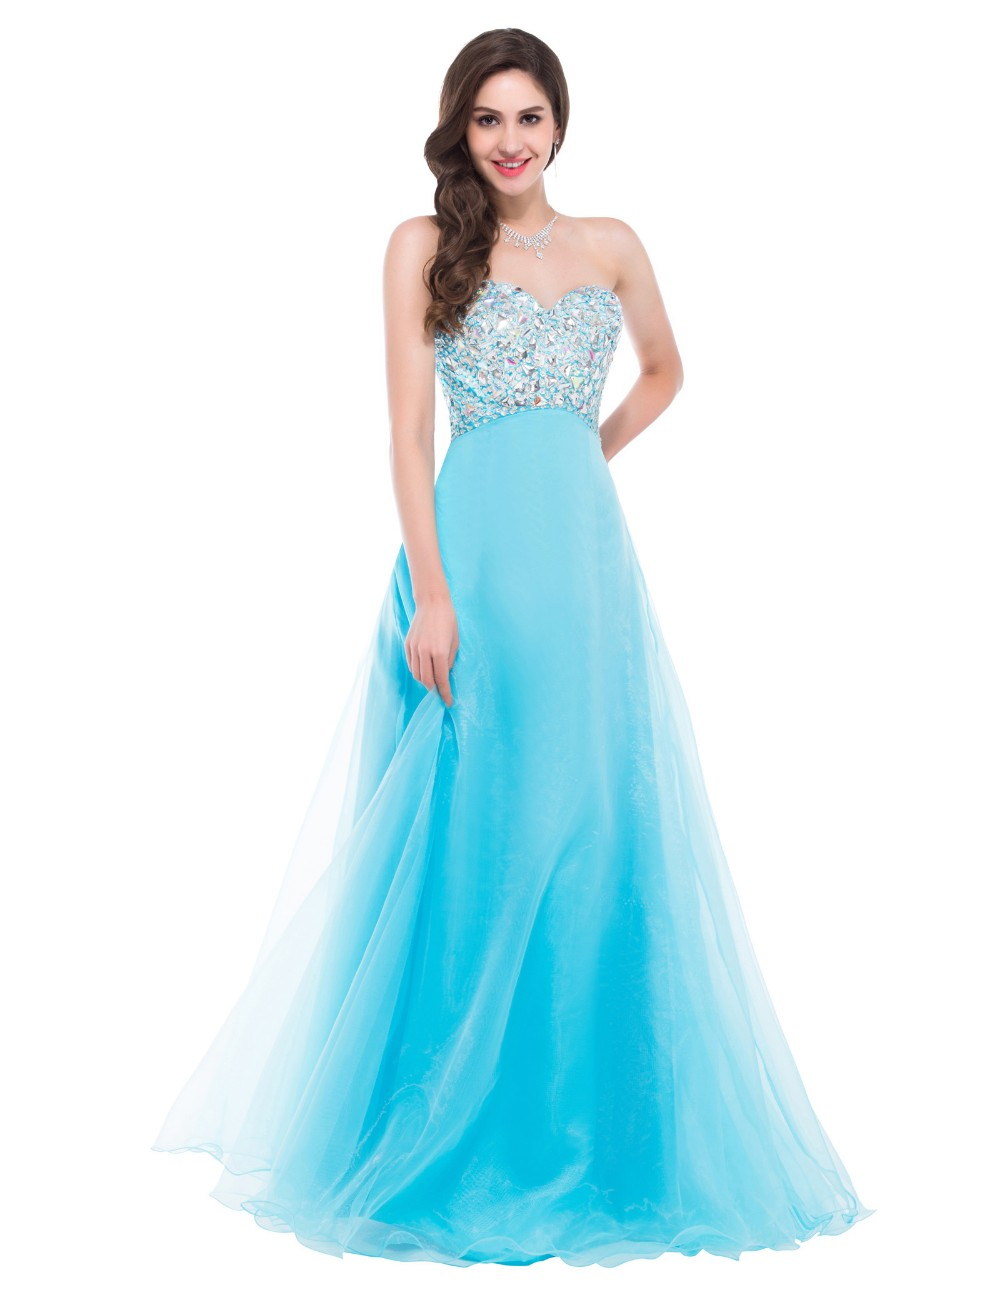 Crystals Bodice Homecoming Dresses Strapless Lace Up Prom Dresses ...